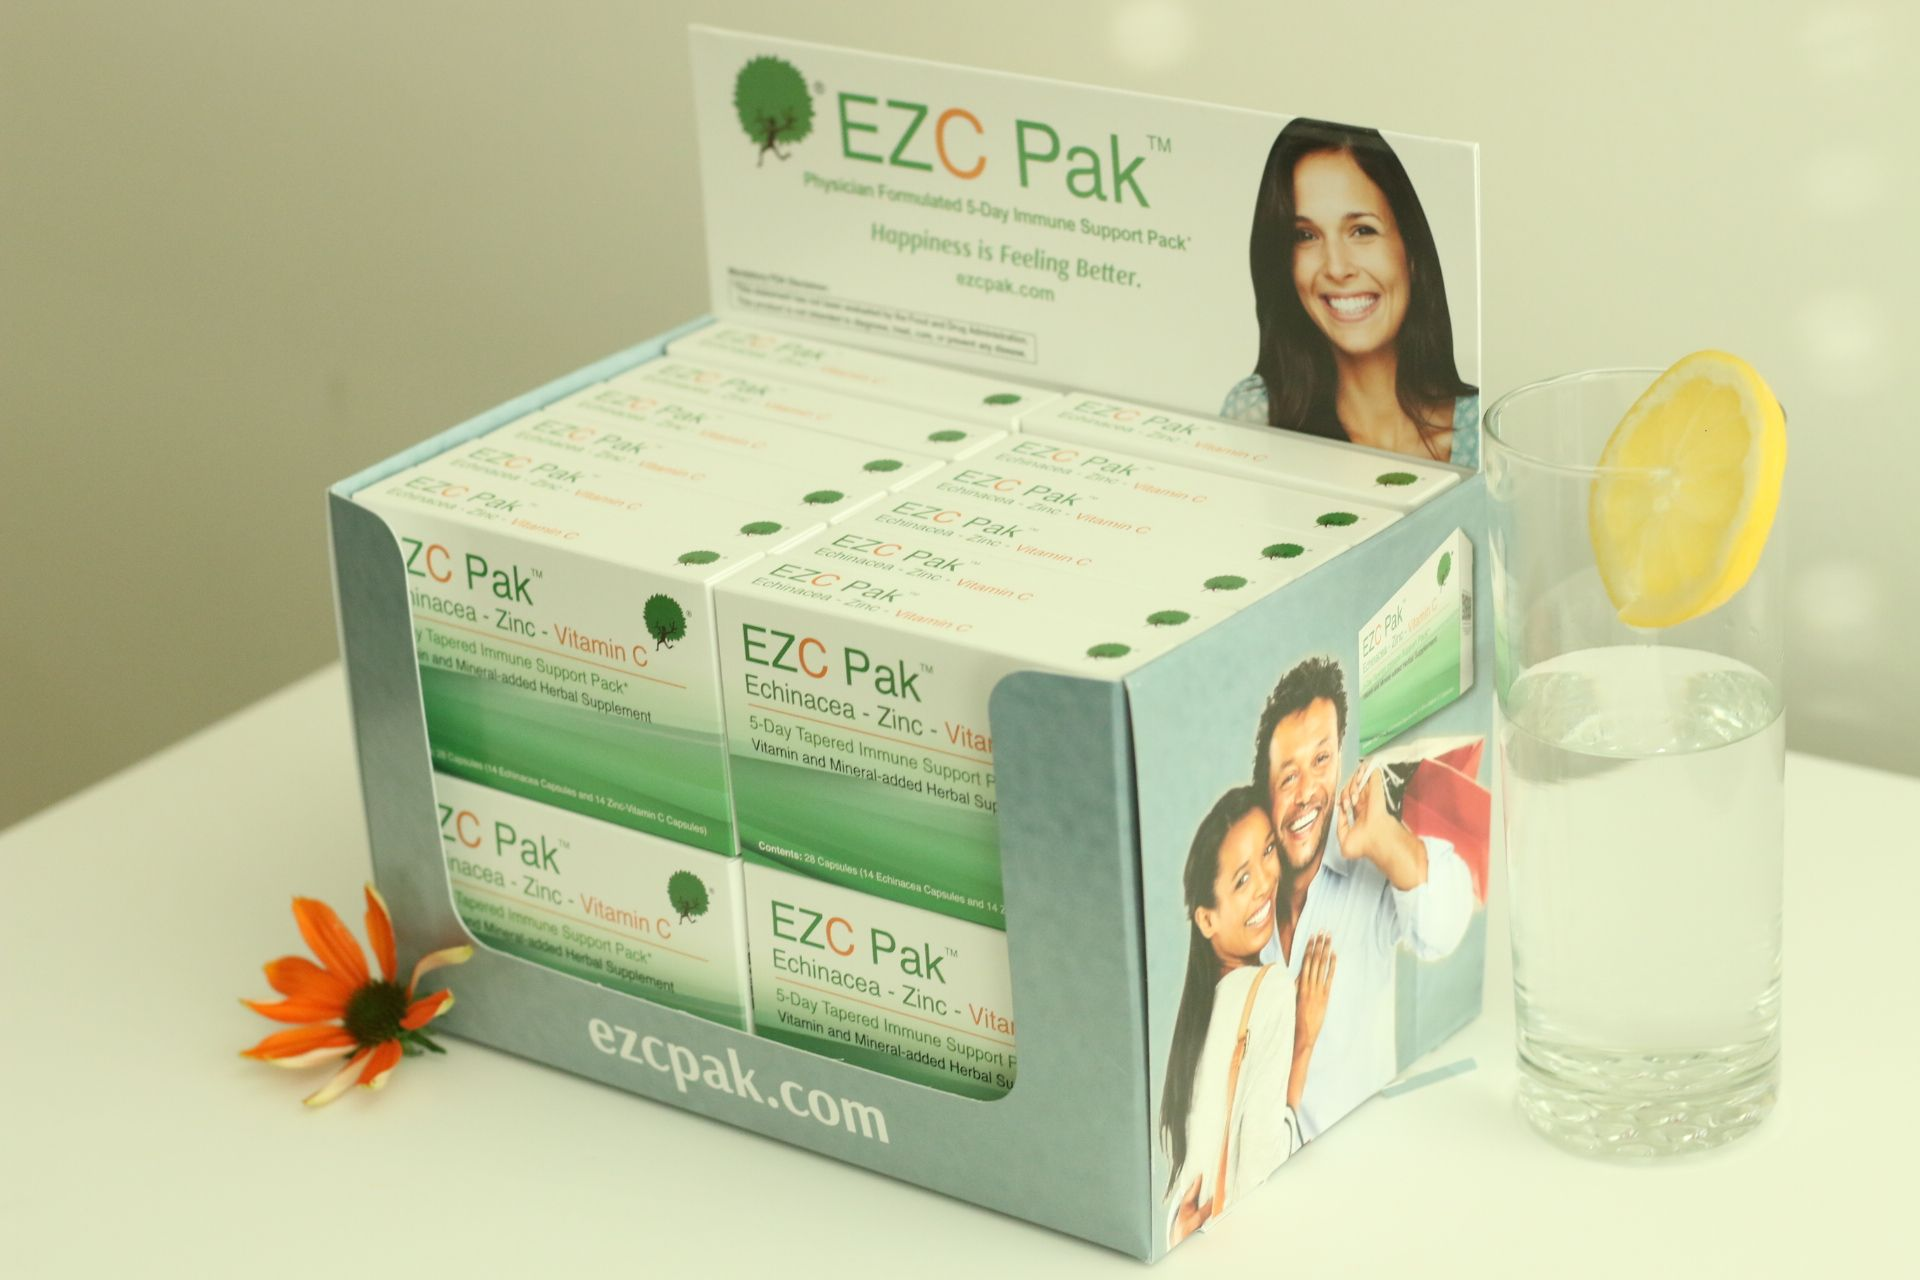 Ezc Pak 24 Pack Display With Images